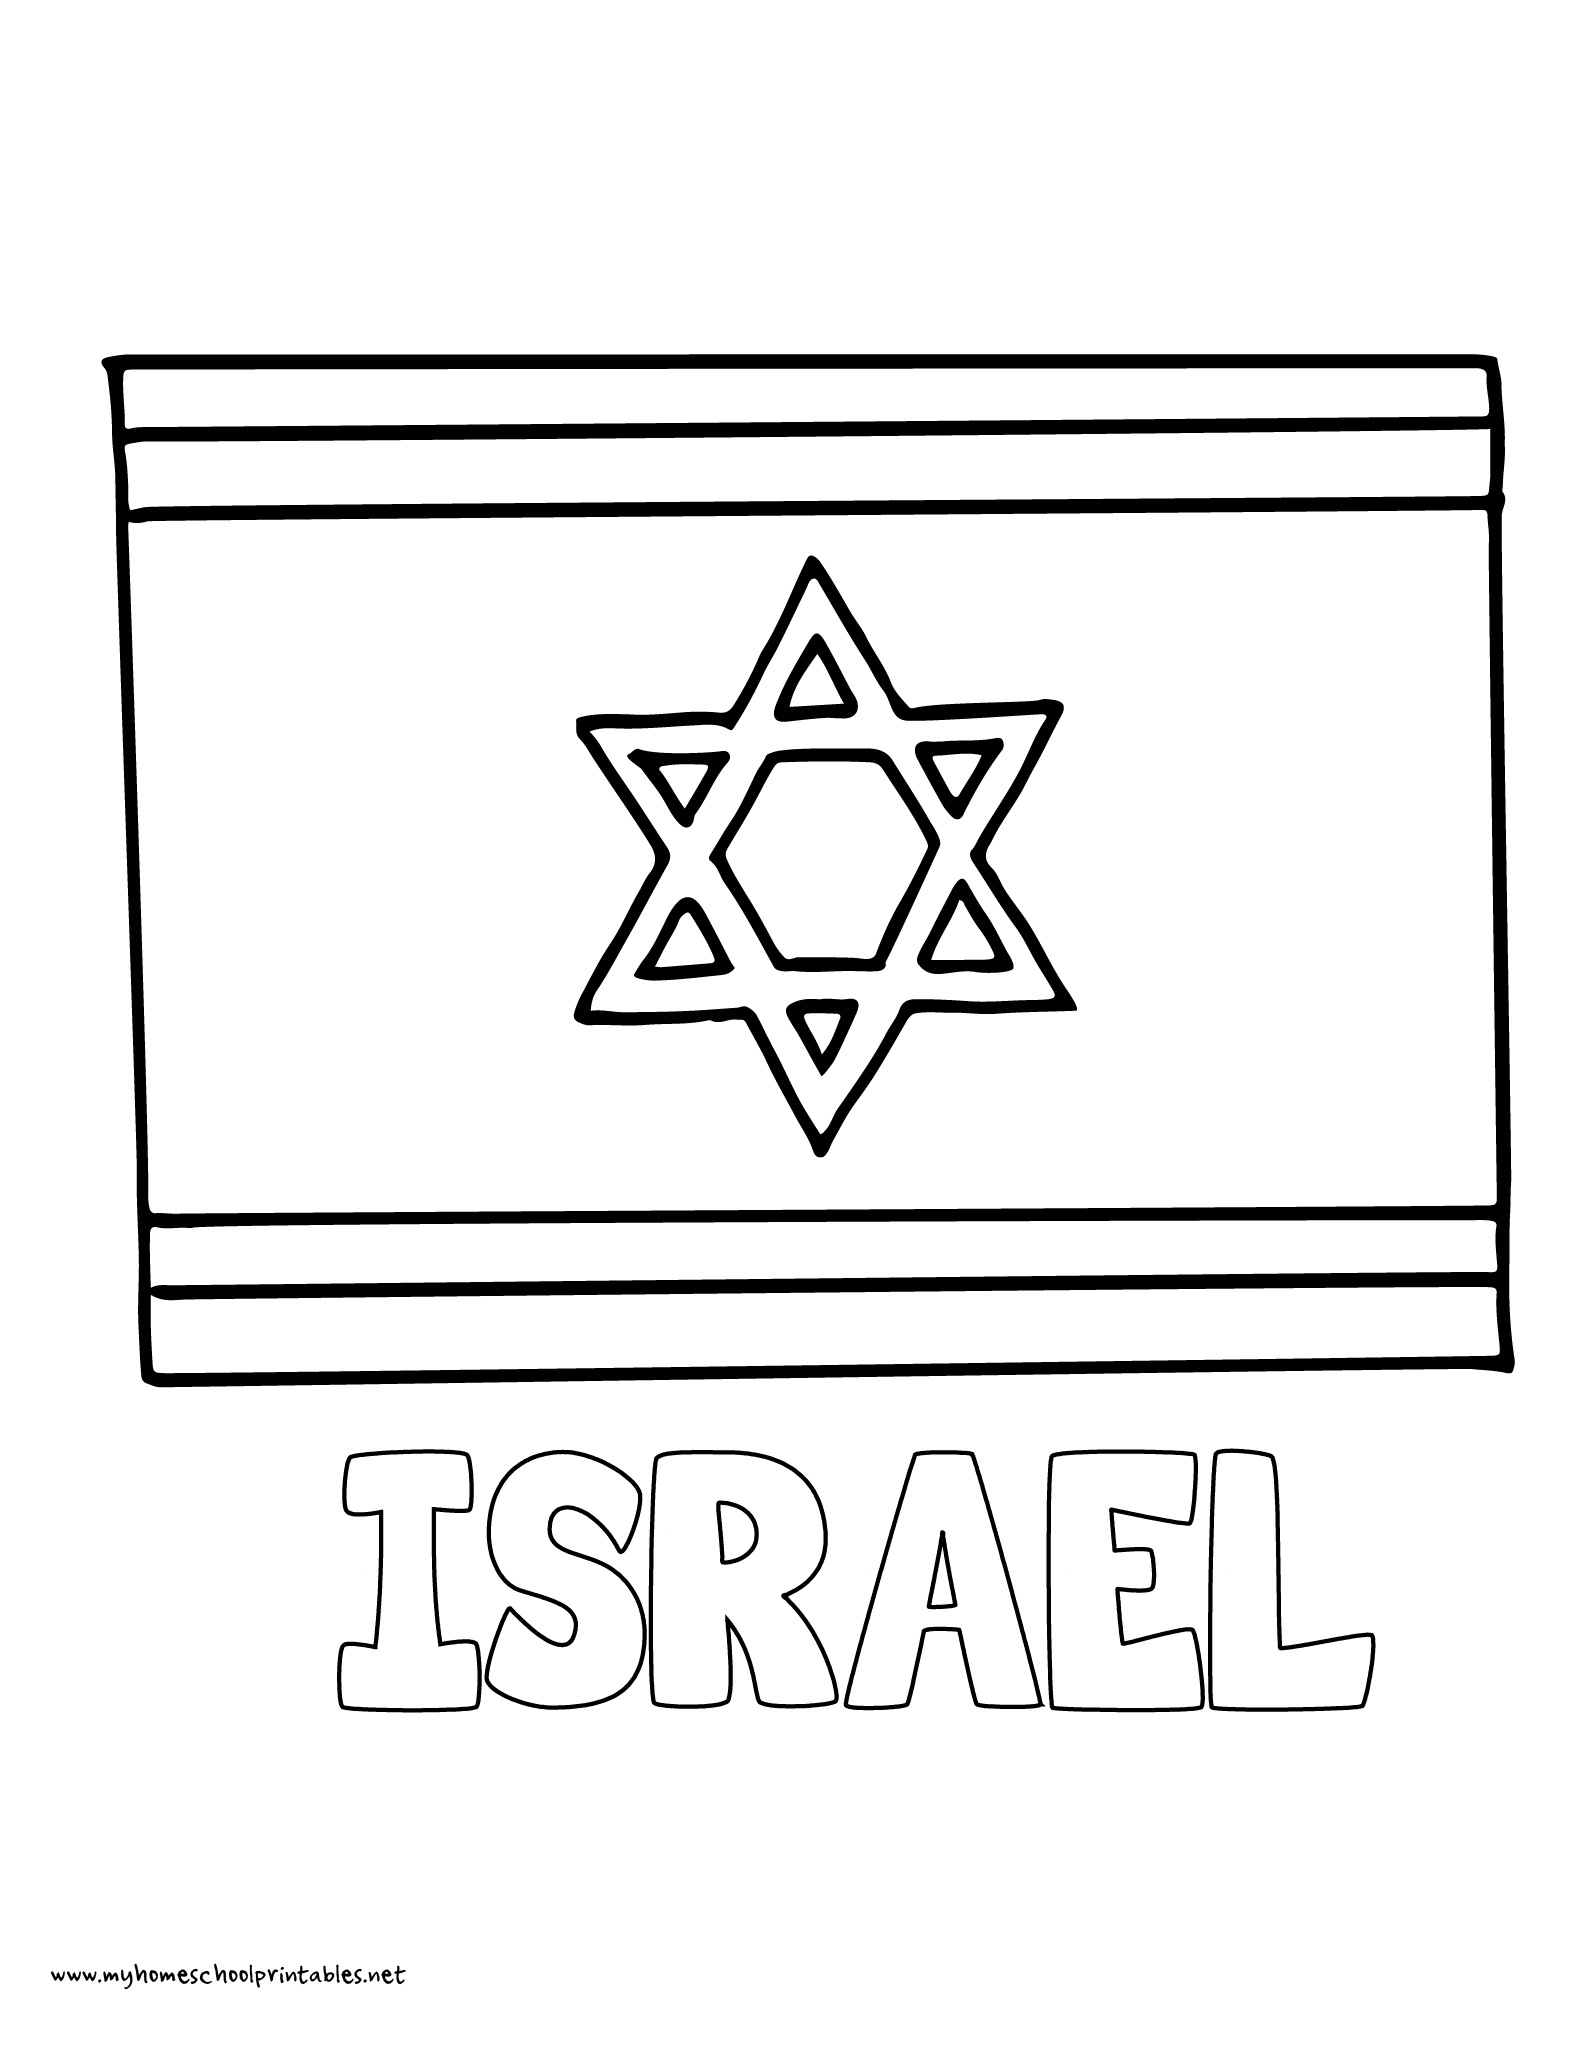 My homeschool printables history coloring pages volume 4 for Flag of israel coloring page